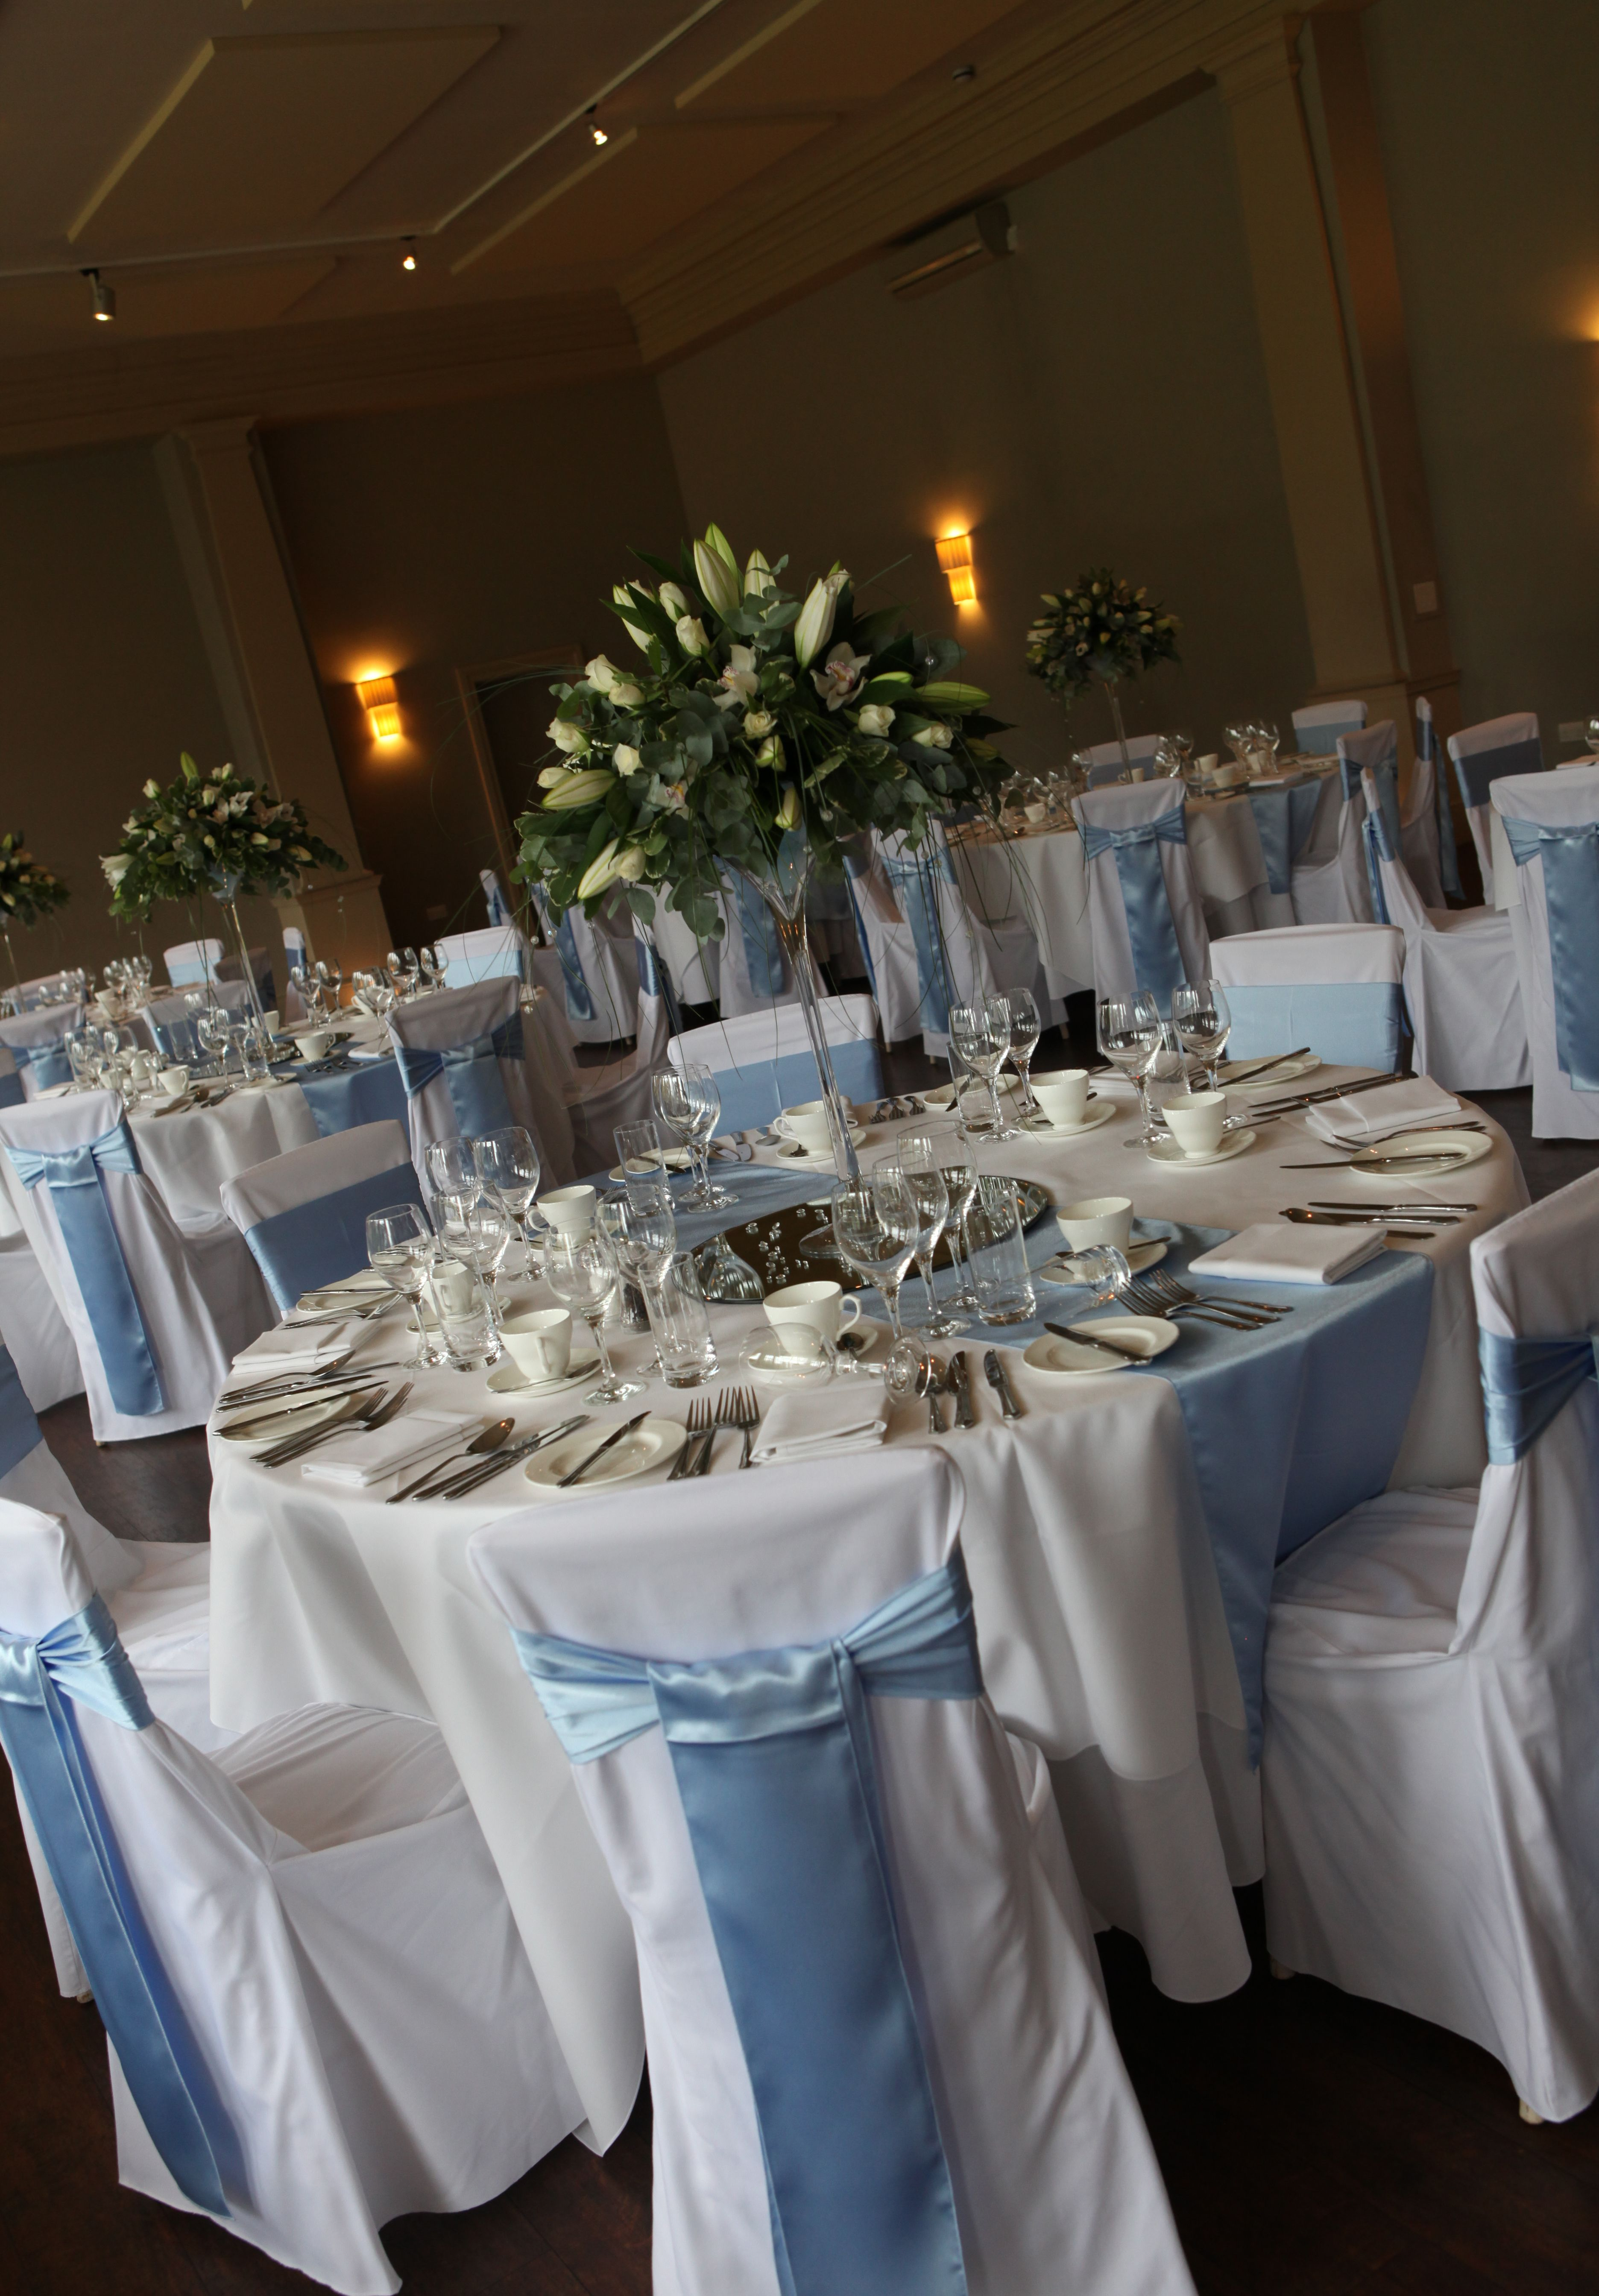 Marvelous Sky Blue And White Stubton Hall Modernheritagestyling Co Download Free Architecture Designs Sospemadebymaigaardcom